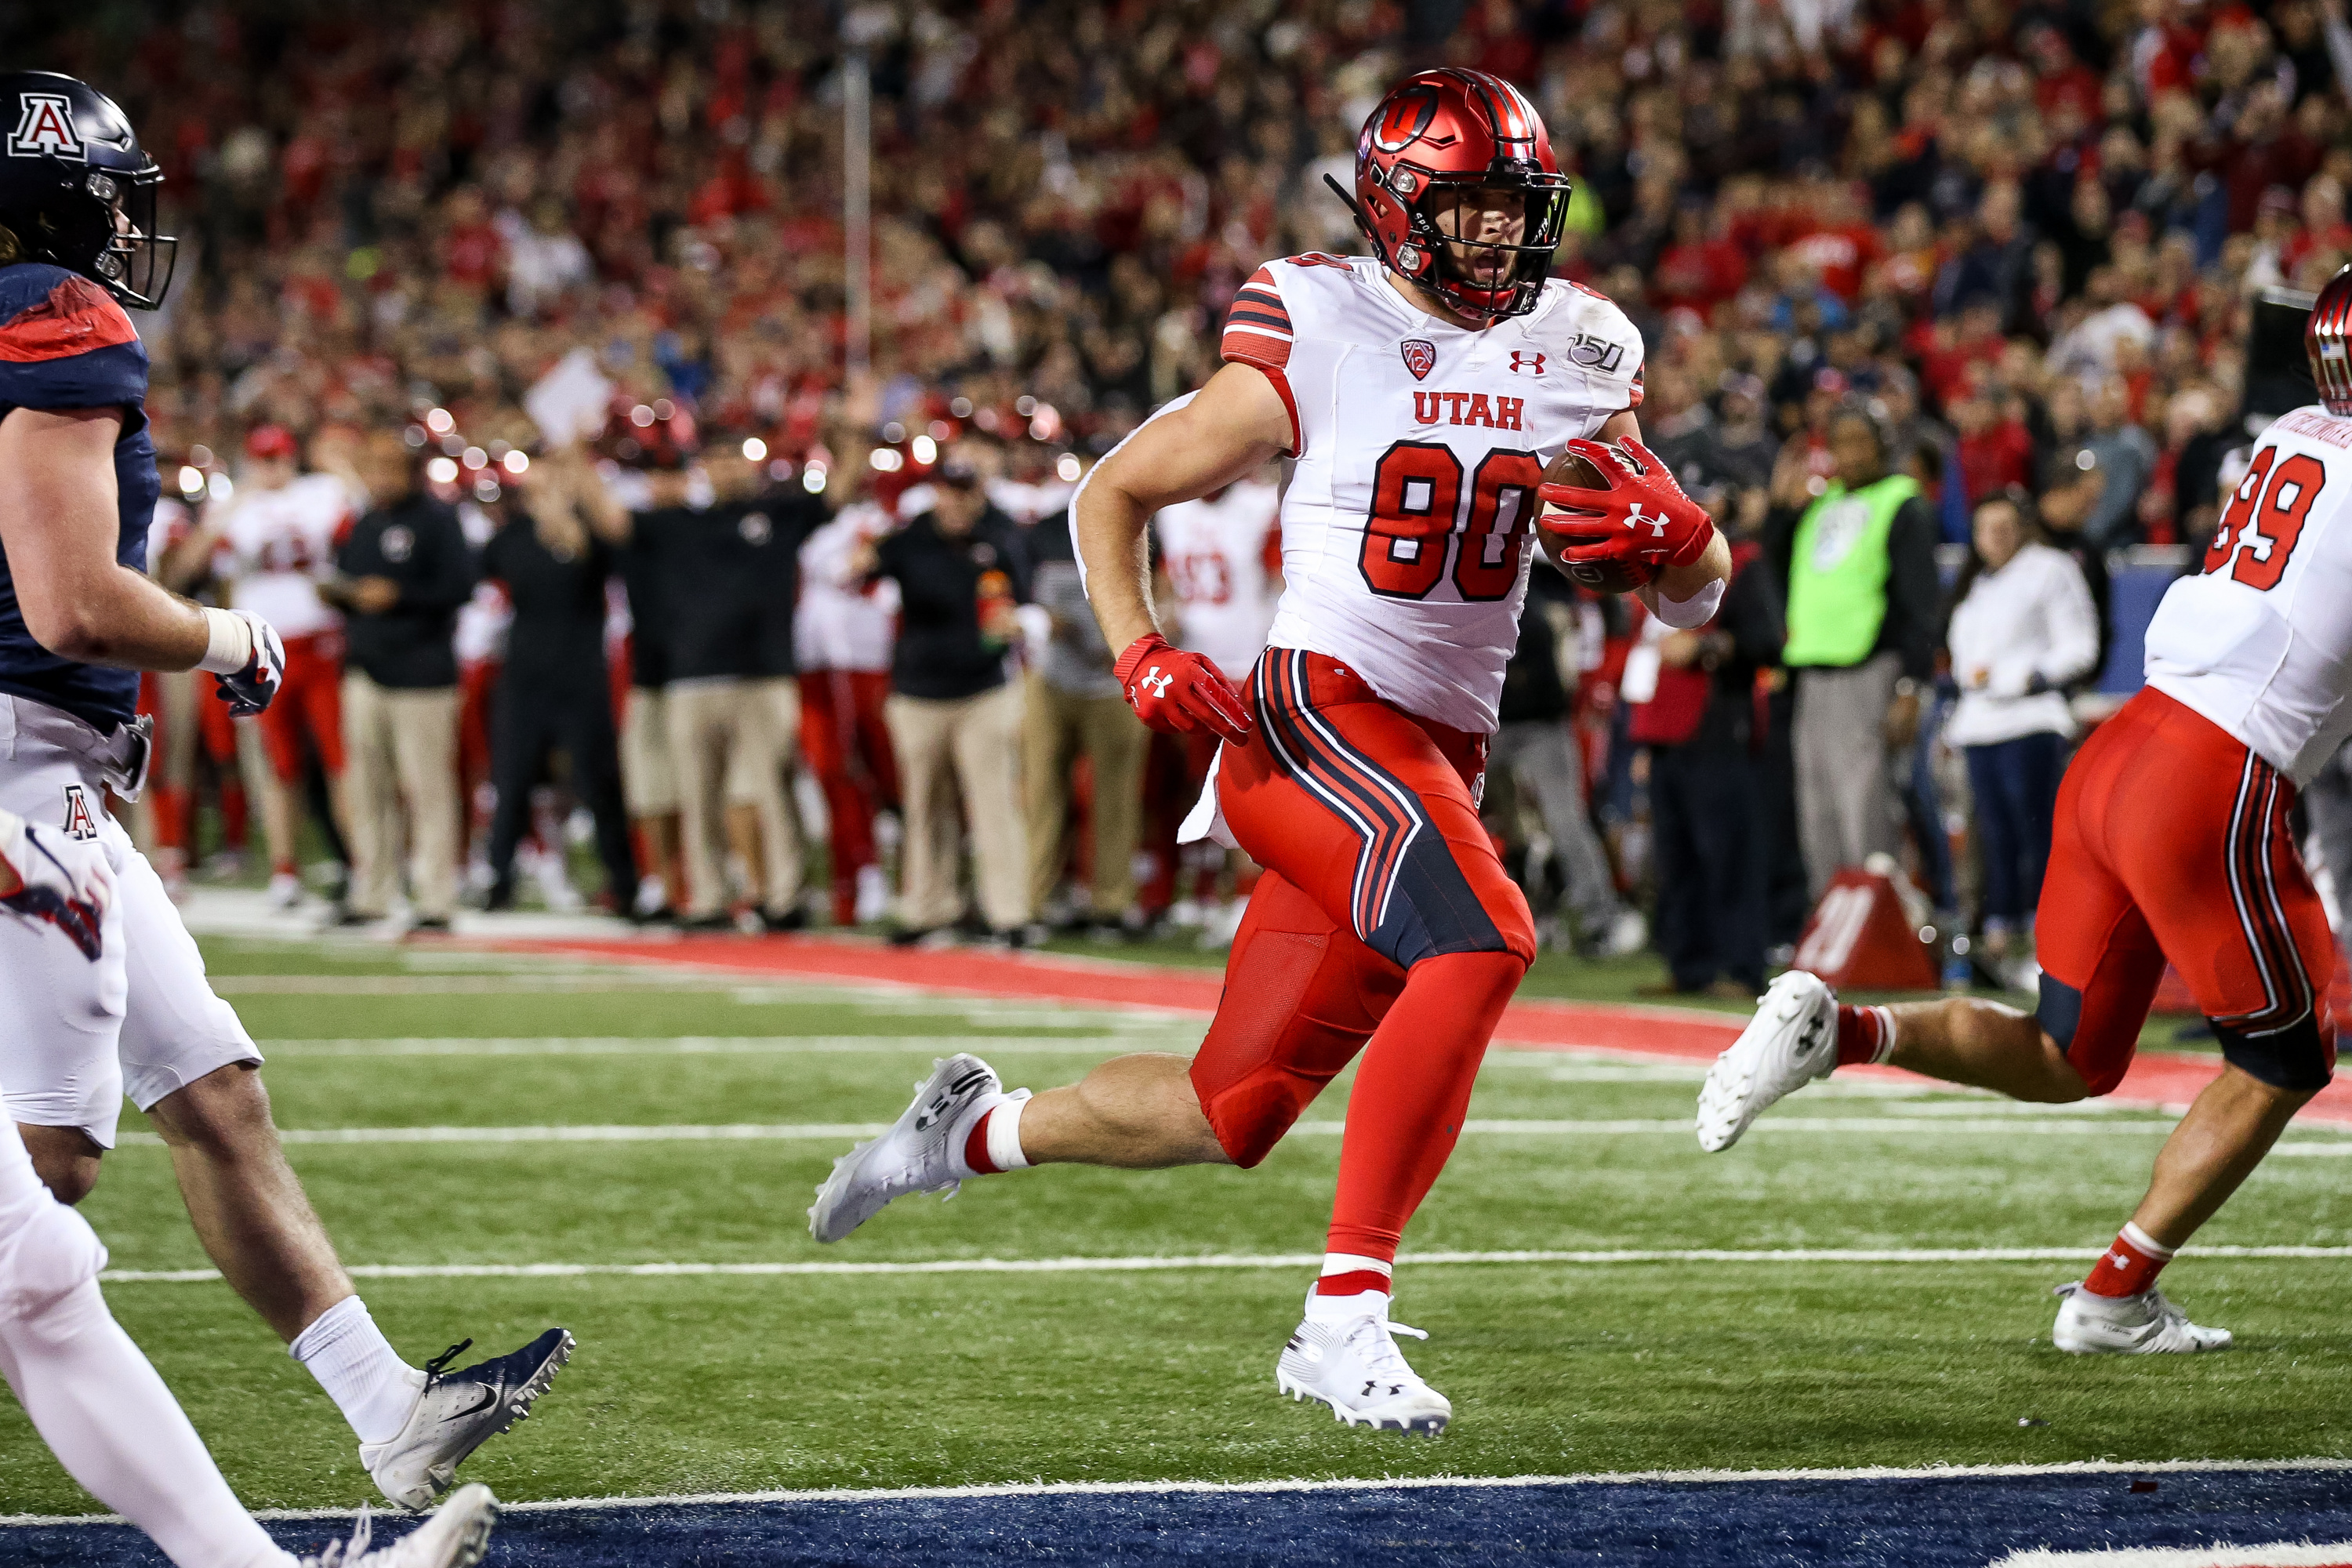 Utah Utes tight end Brant Kuithe (80) runs the ball in for a touchdown, putting the Utes up 7-0 over the Arizona Wildcats after the PAT, at Arizona Stadium in Tucson, Arizona on Saturday, Nov. 23, 2019.